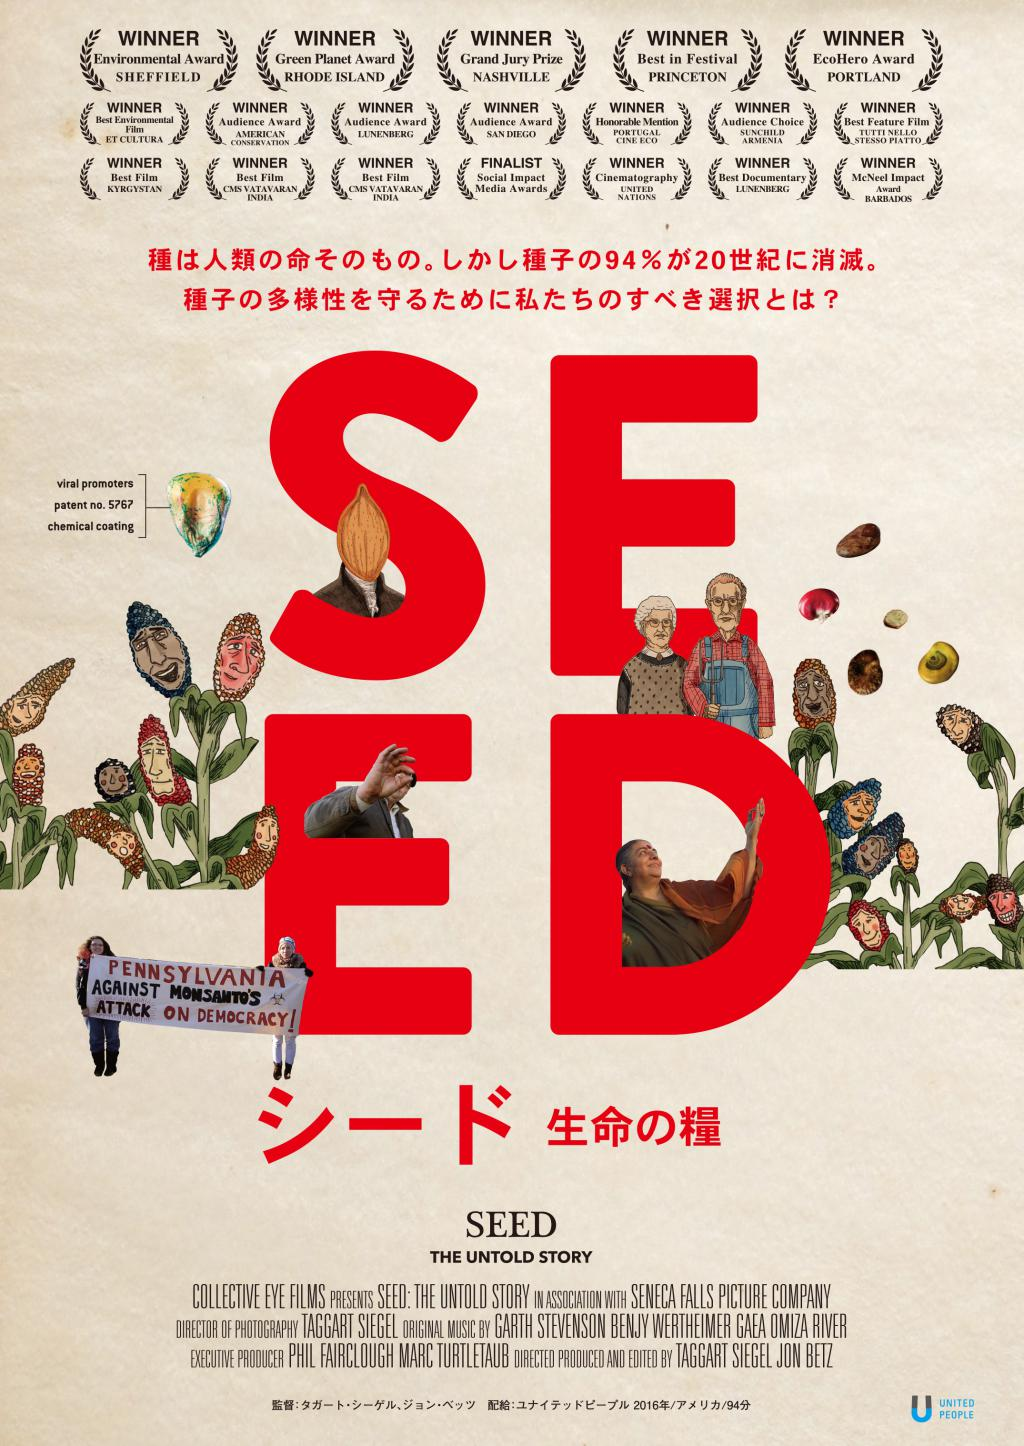 「SEED」©︎Collective Eye Films